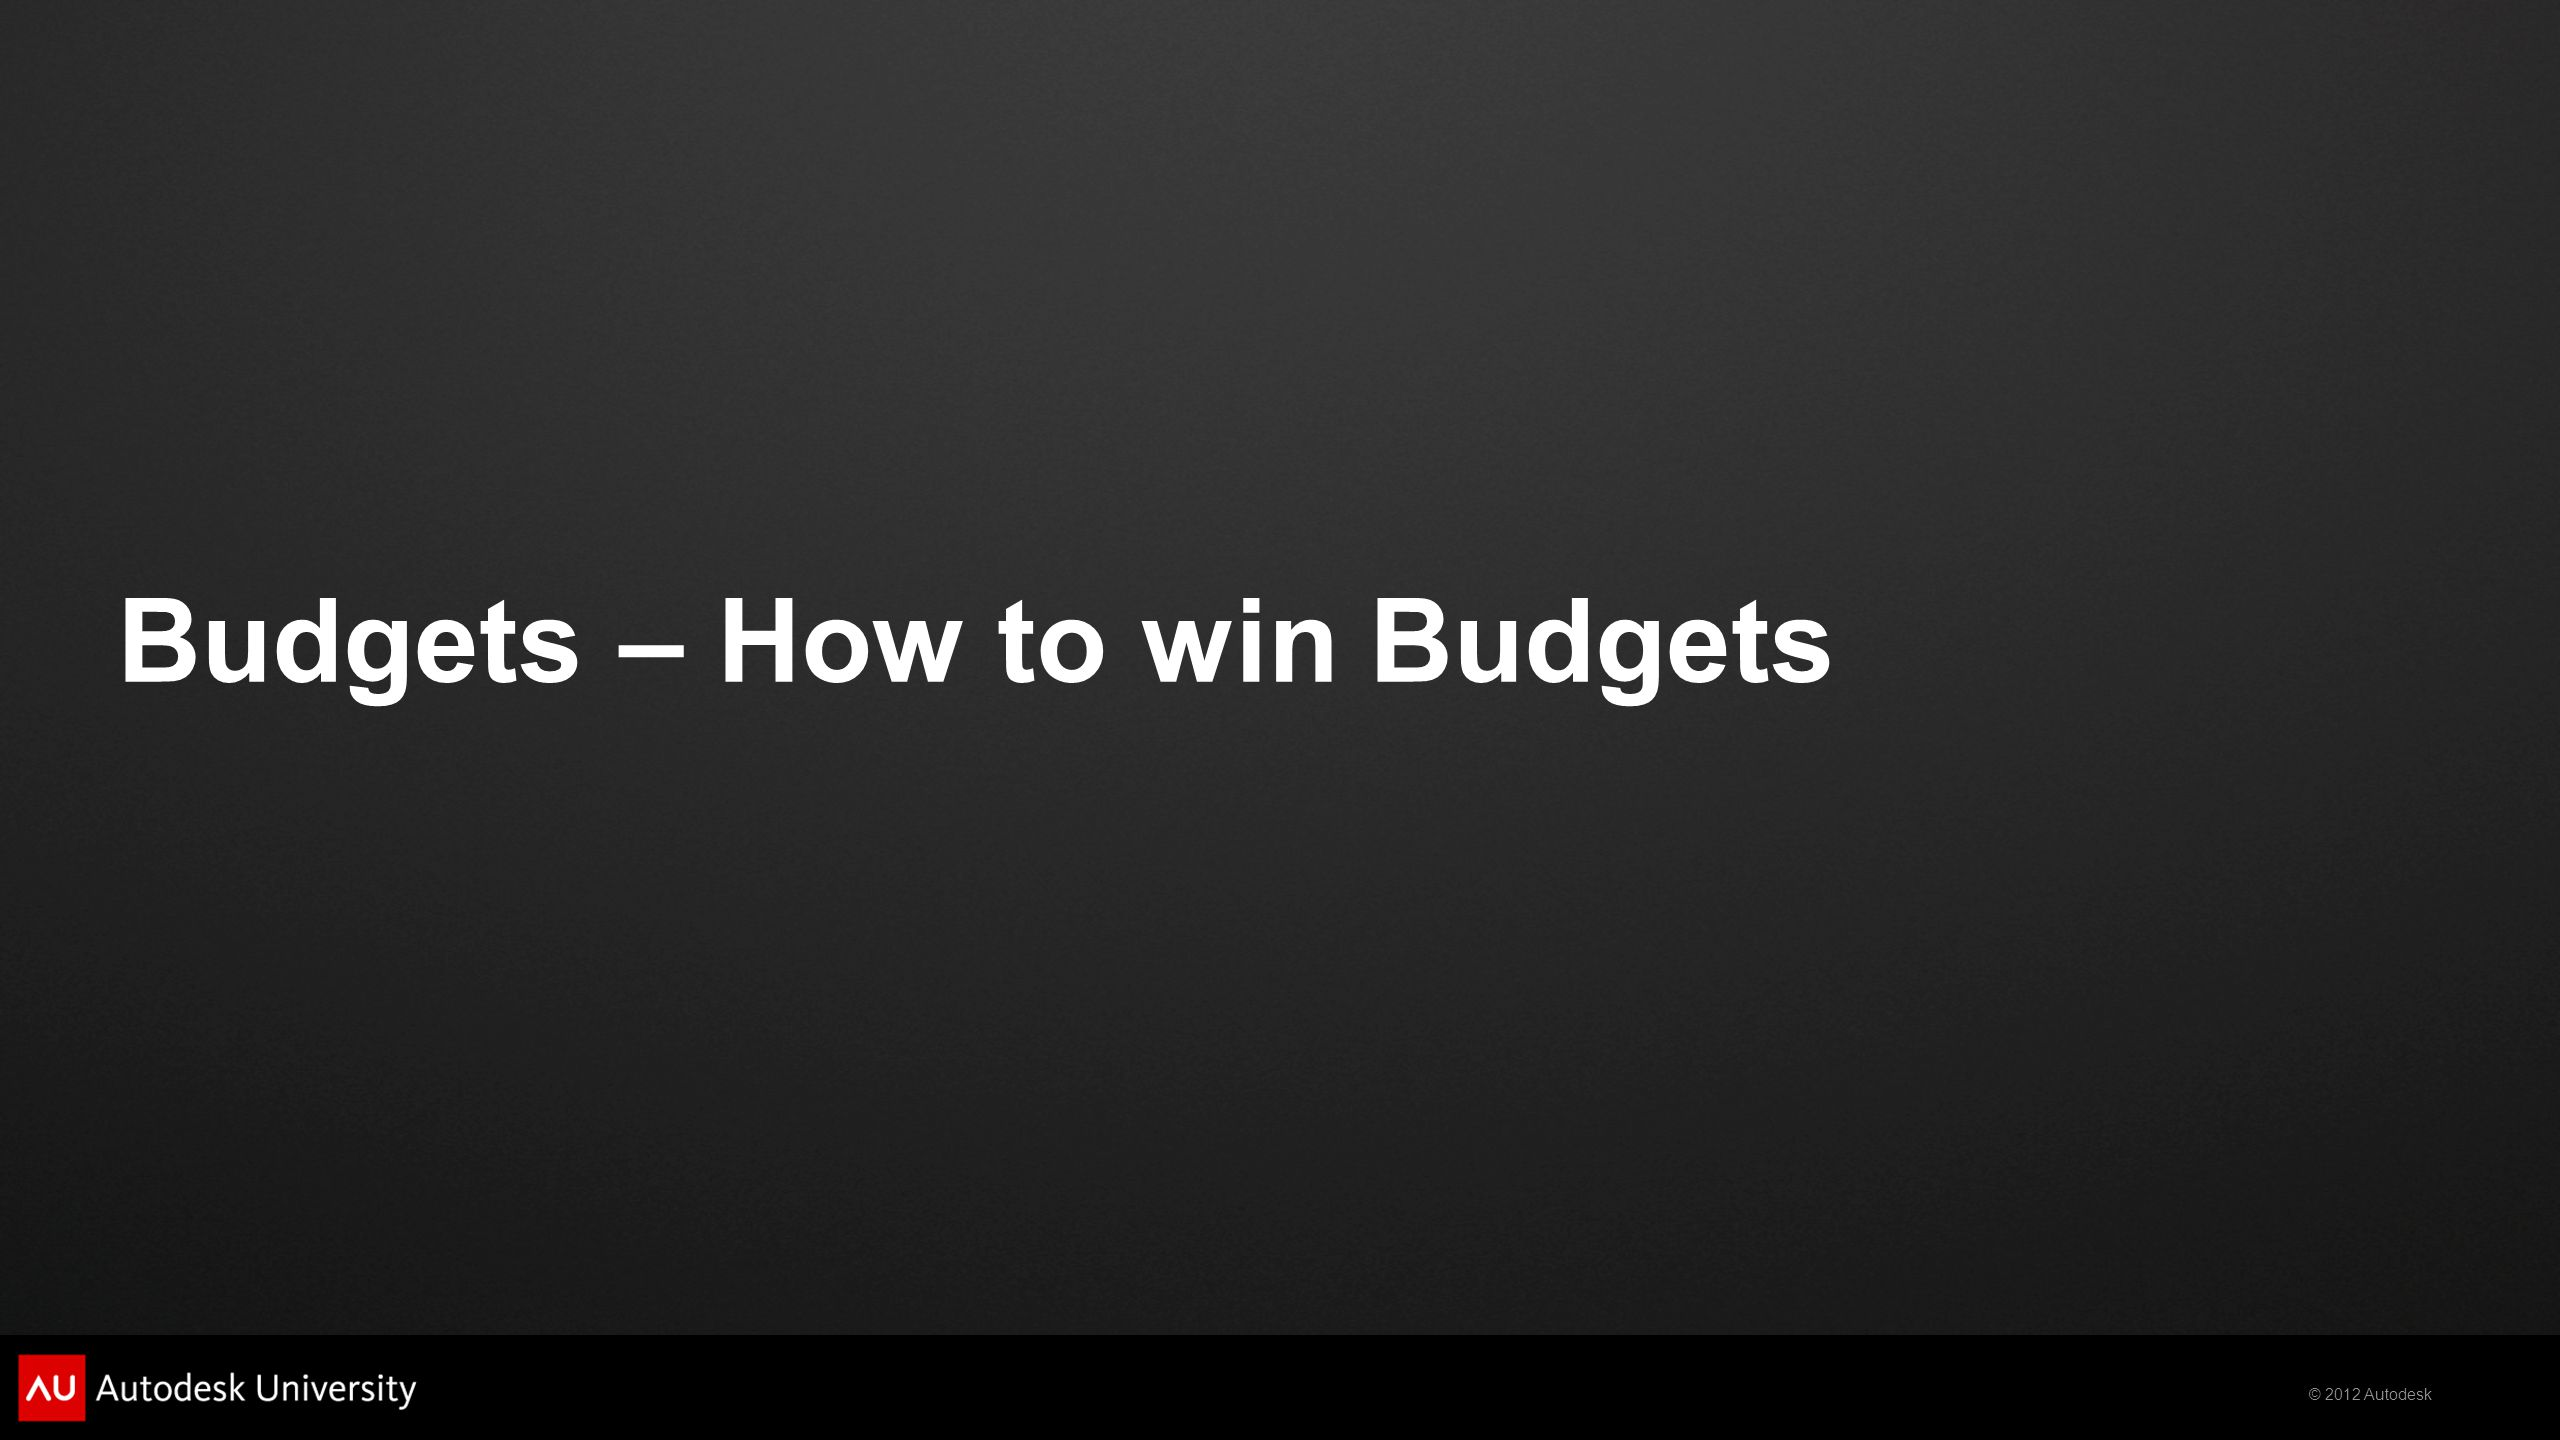 Budgets – How to win Budgets